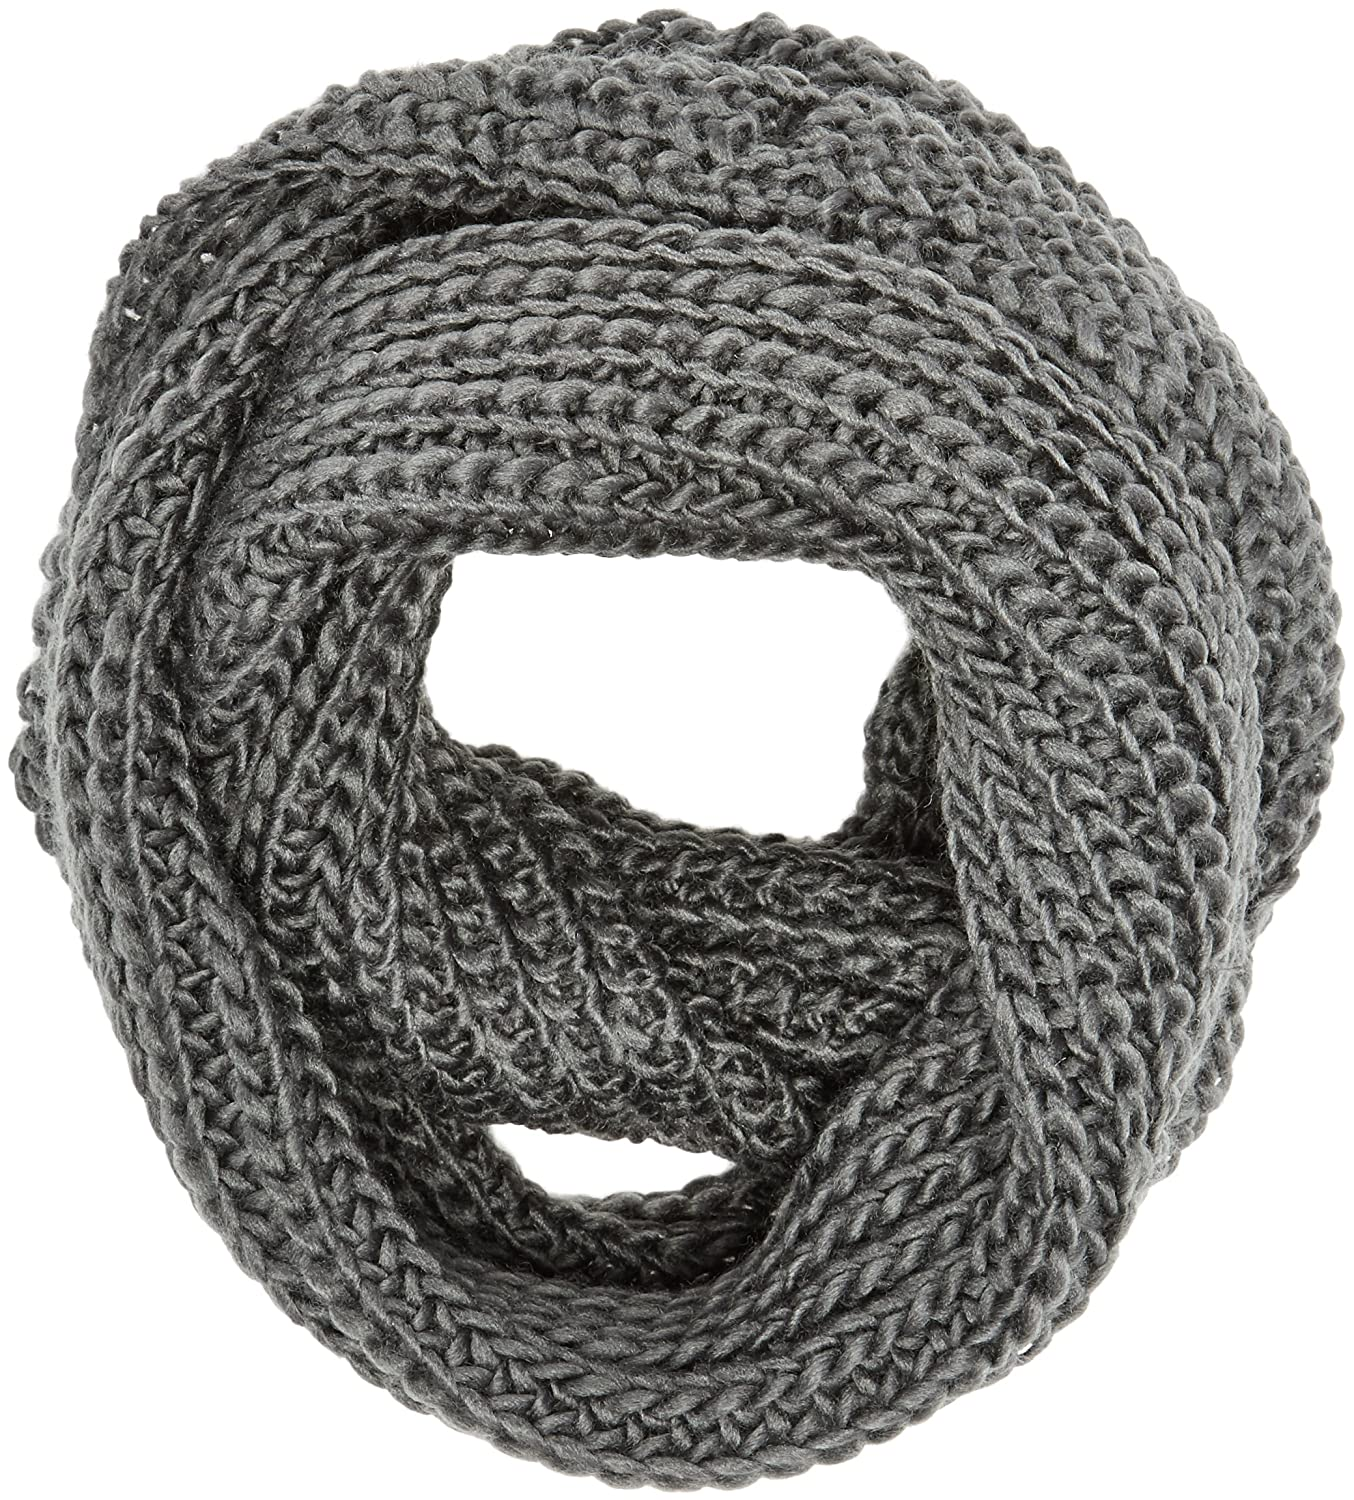 1331c18f60f1f Spinningdaisy Women's Chunky Knit Infinity Scarf Grey Color at Amazon  Women's Clothing store: Other Products